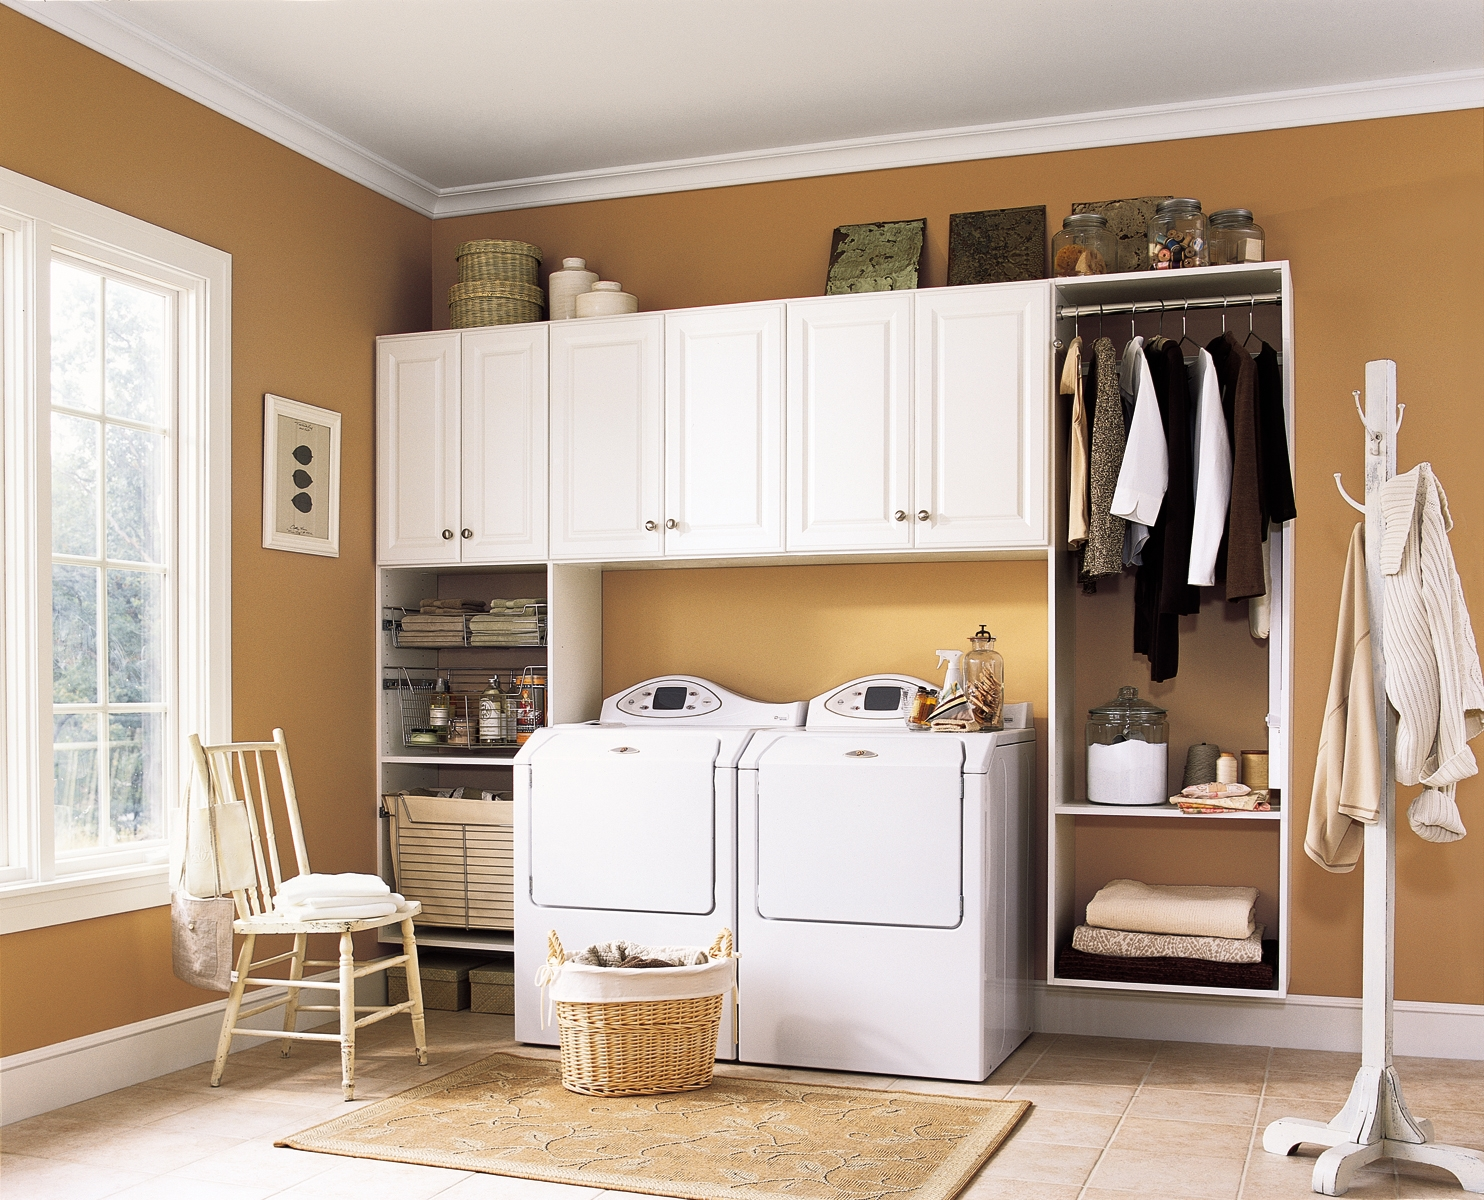 I dream of laundry rooms apartments i like blog - Laundry room design ideas ...